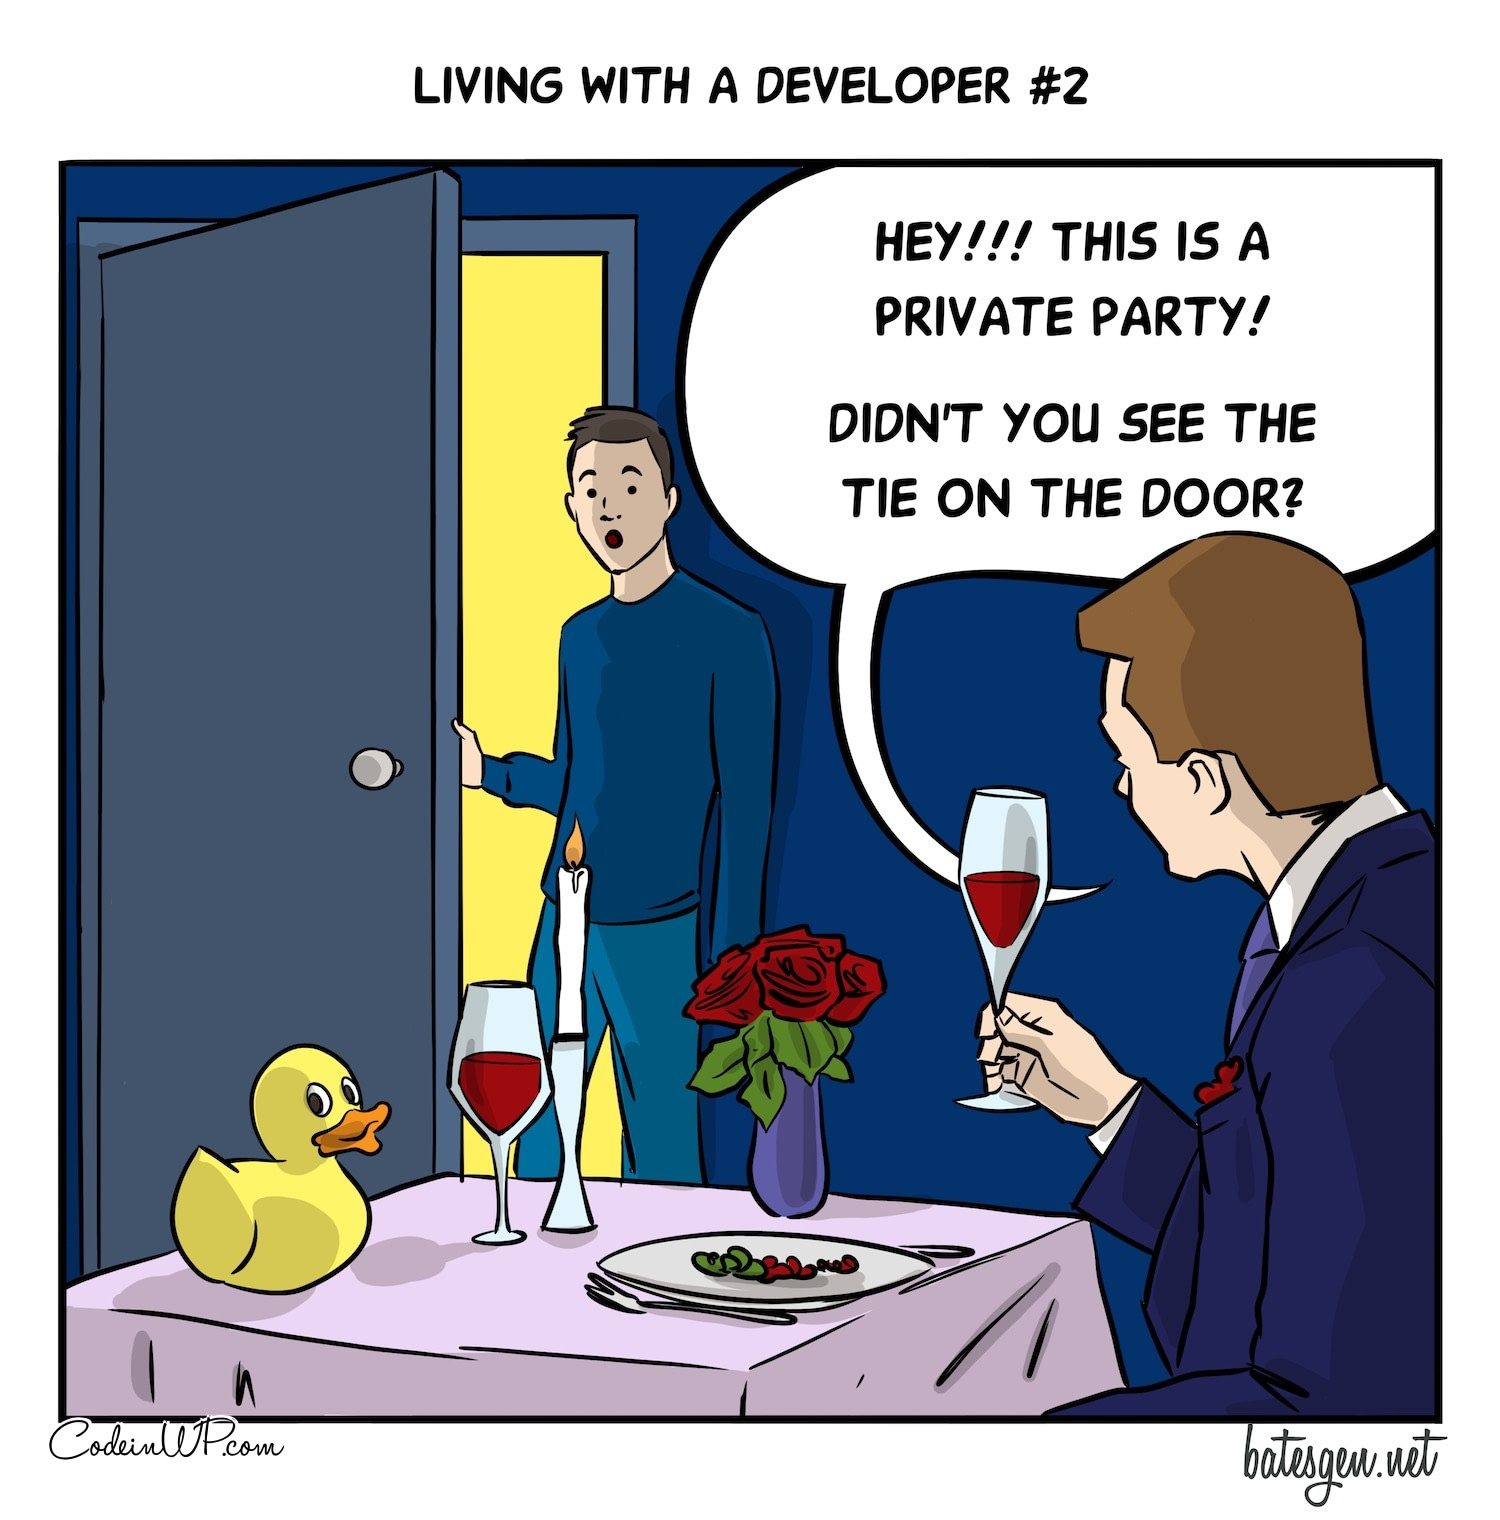 Rubber duck debugging takes some wooing